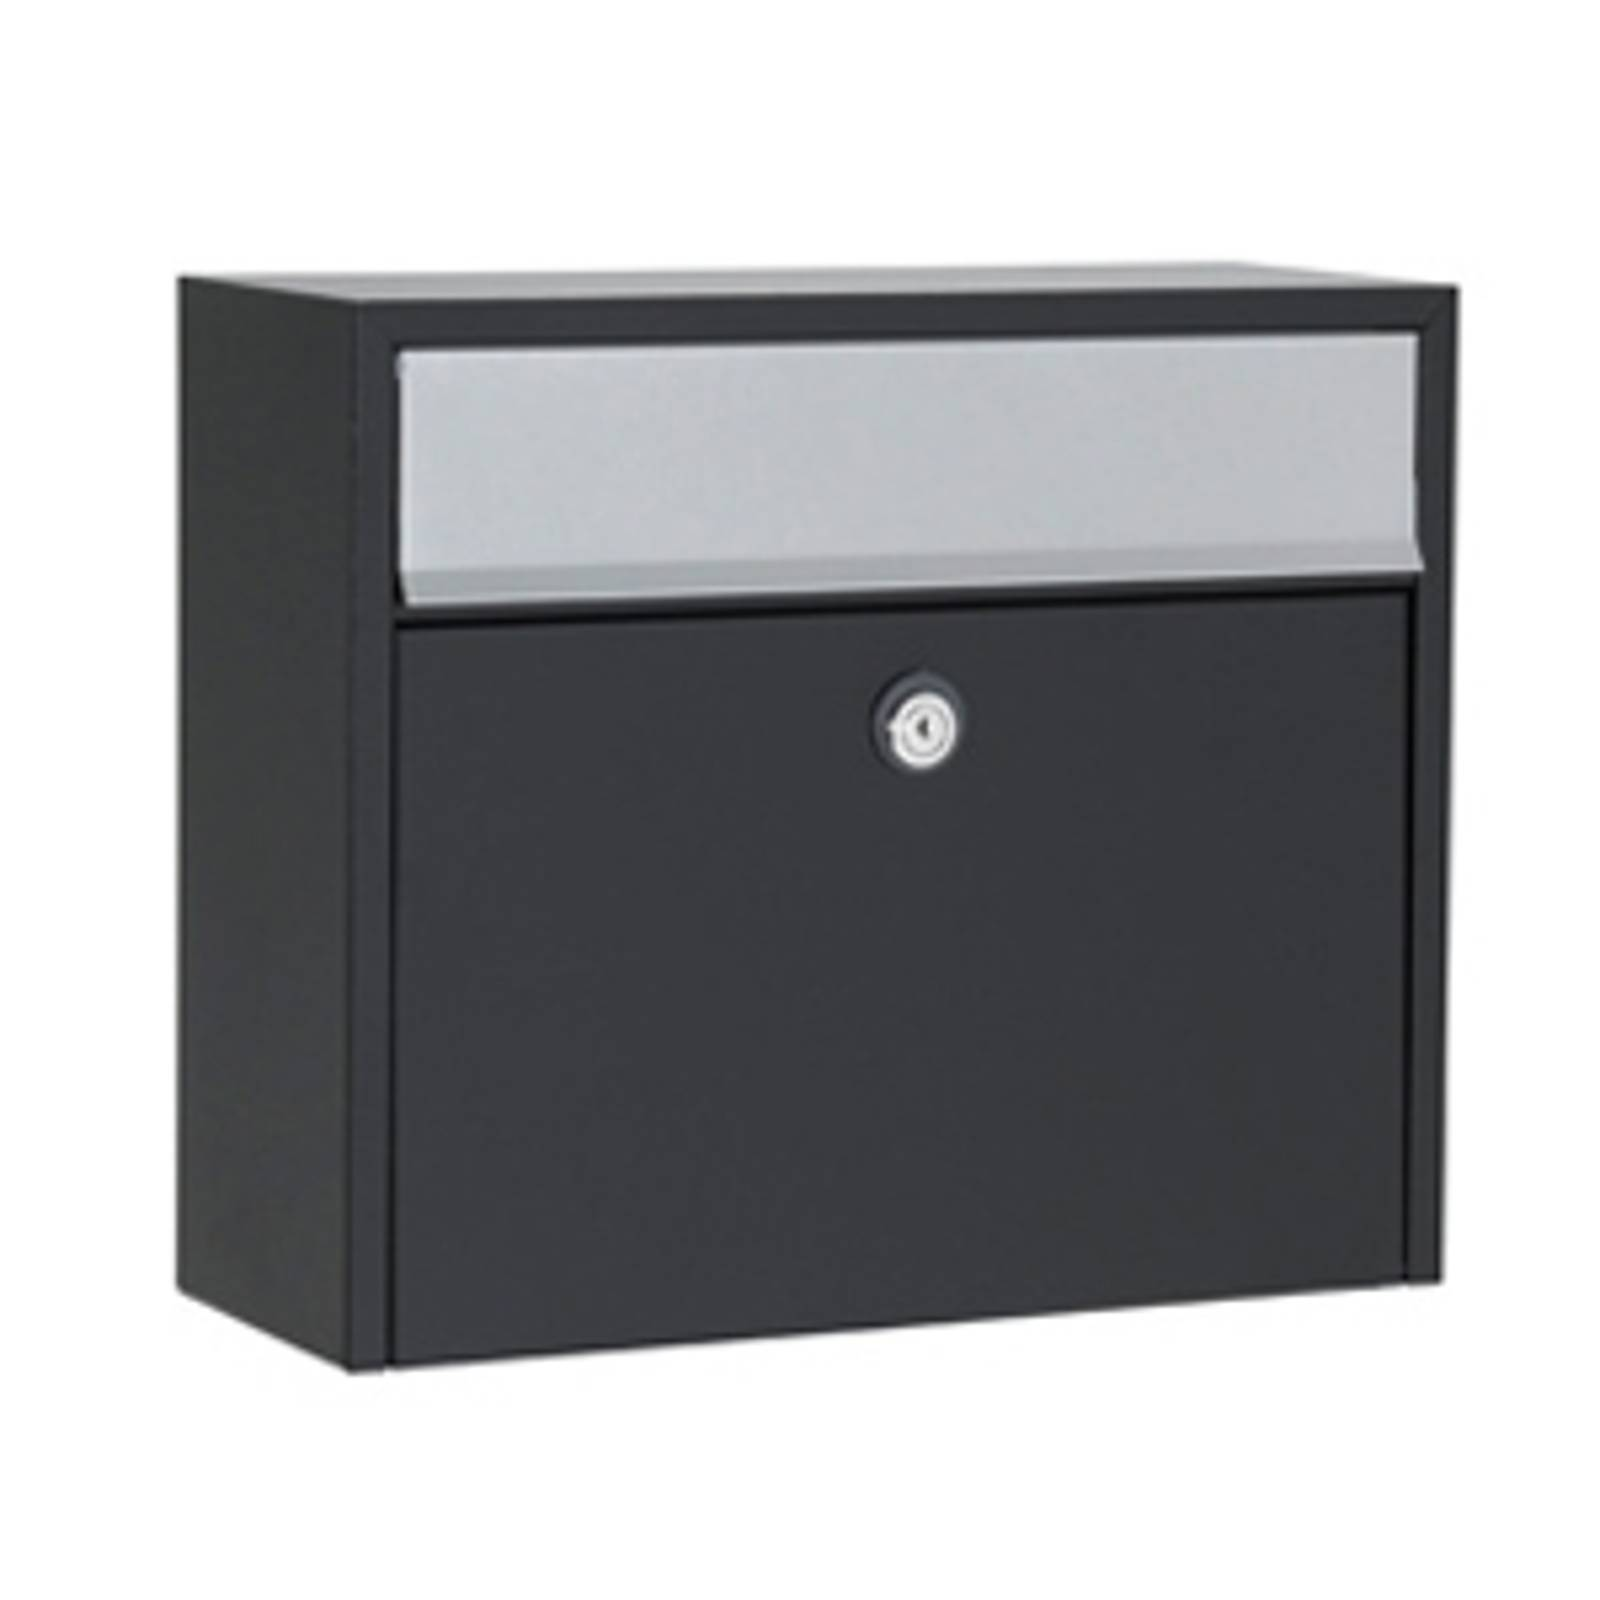 Simple letterbox LT150, black, Euro lock from Juliana